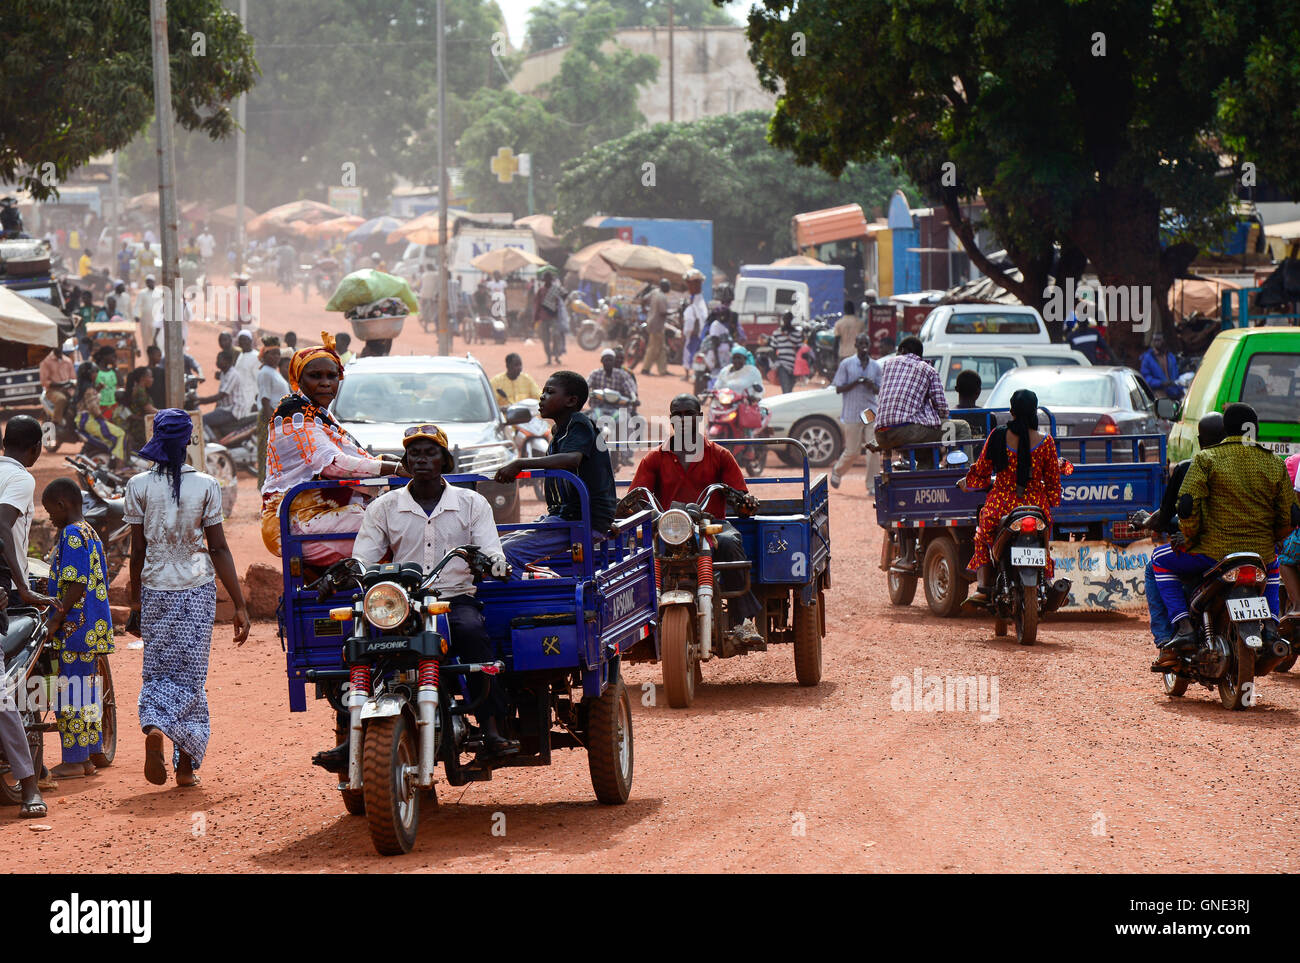 BURKINA FASO, Bobo Dioulasso, Transport, chinese tricycle Apsonic / BURKINA FASO, Bobo Dioulasso, Transport, chinesisches - Stock Image